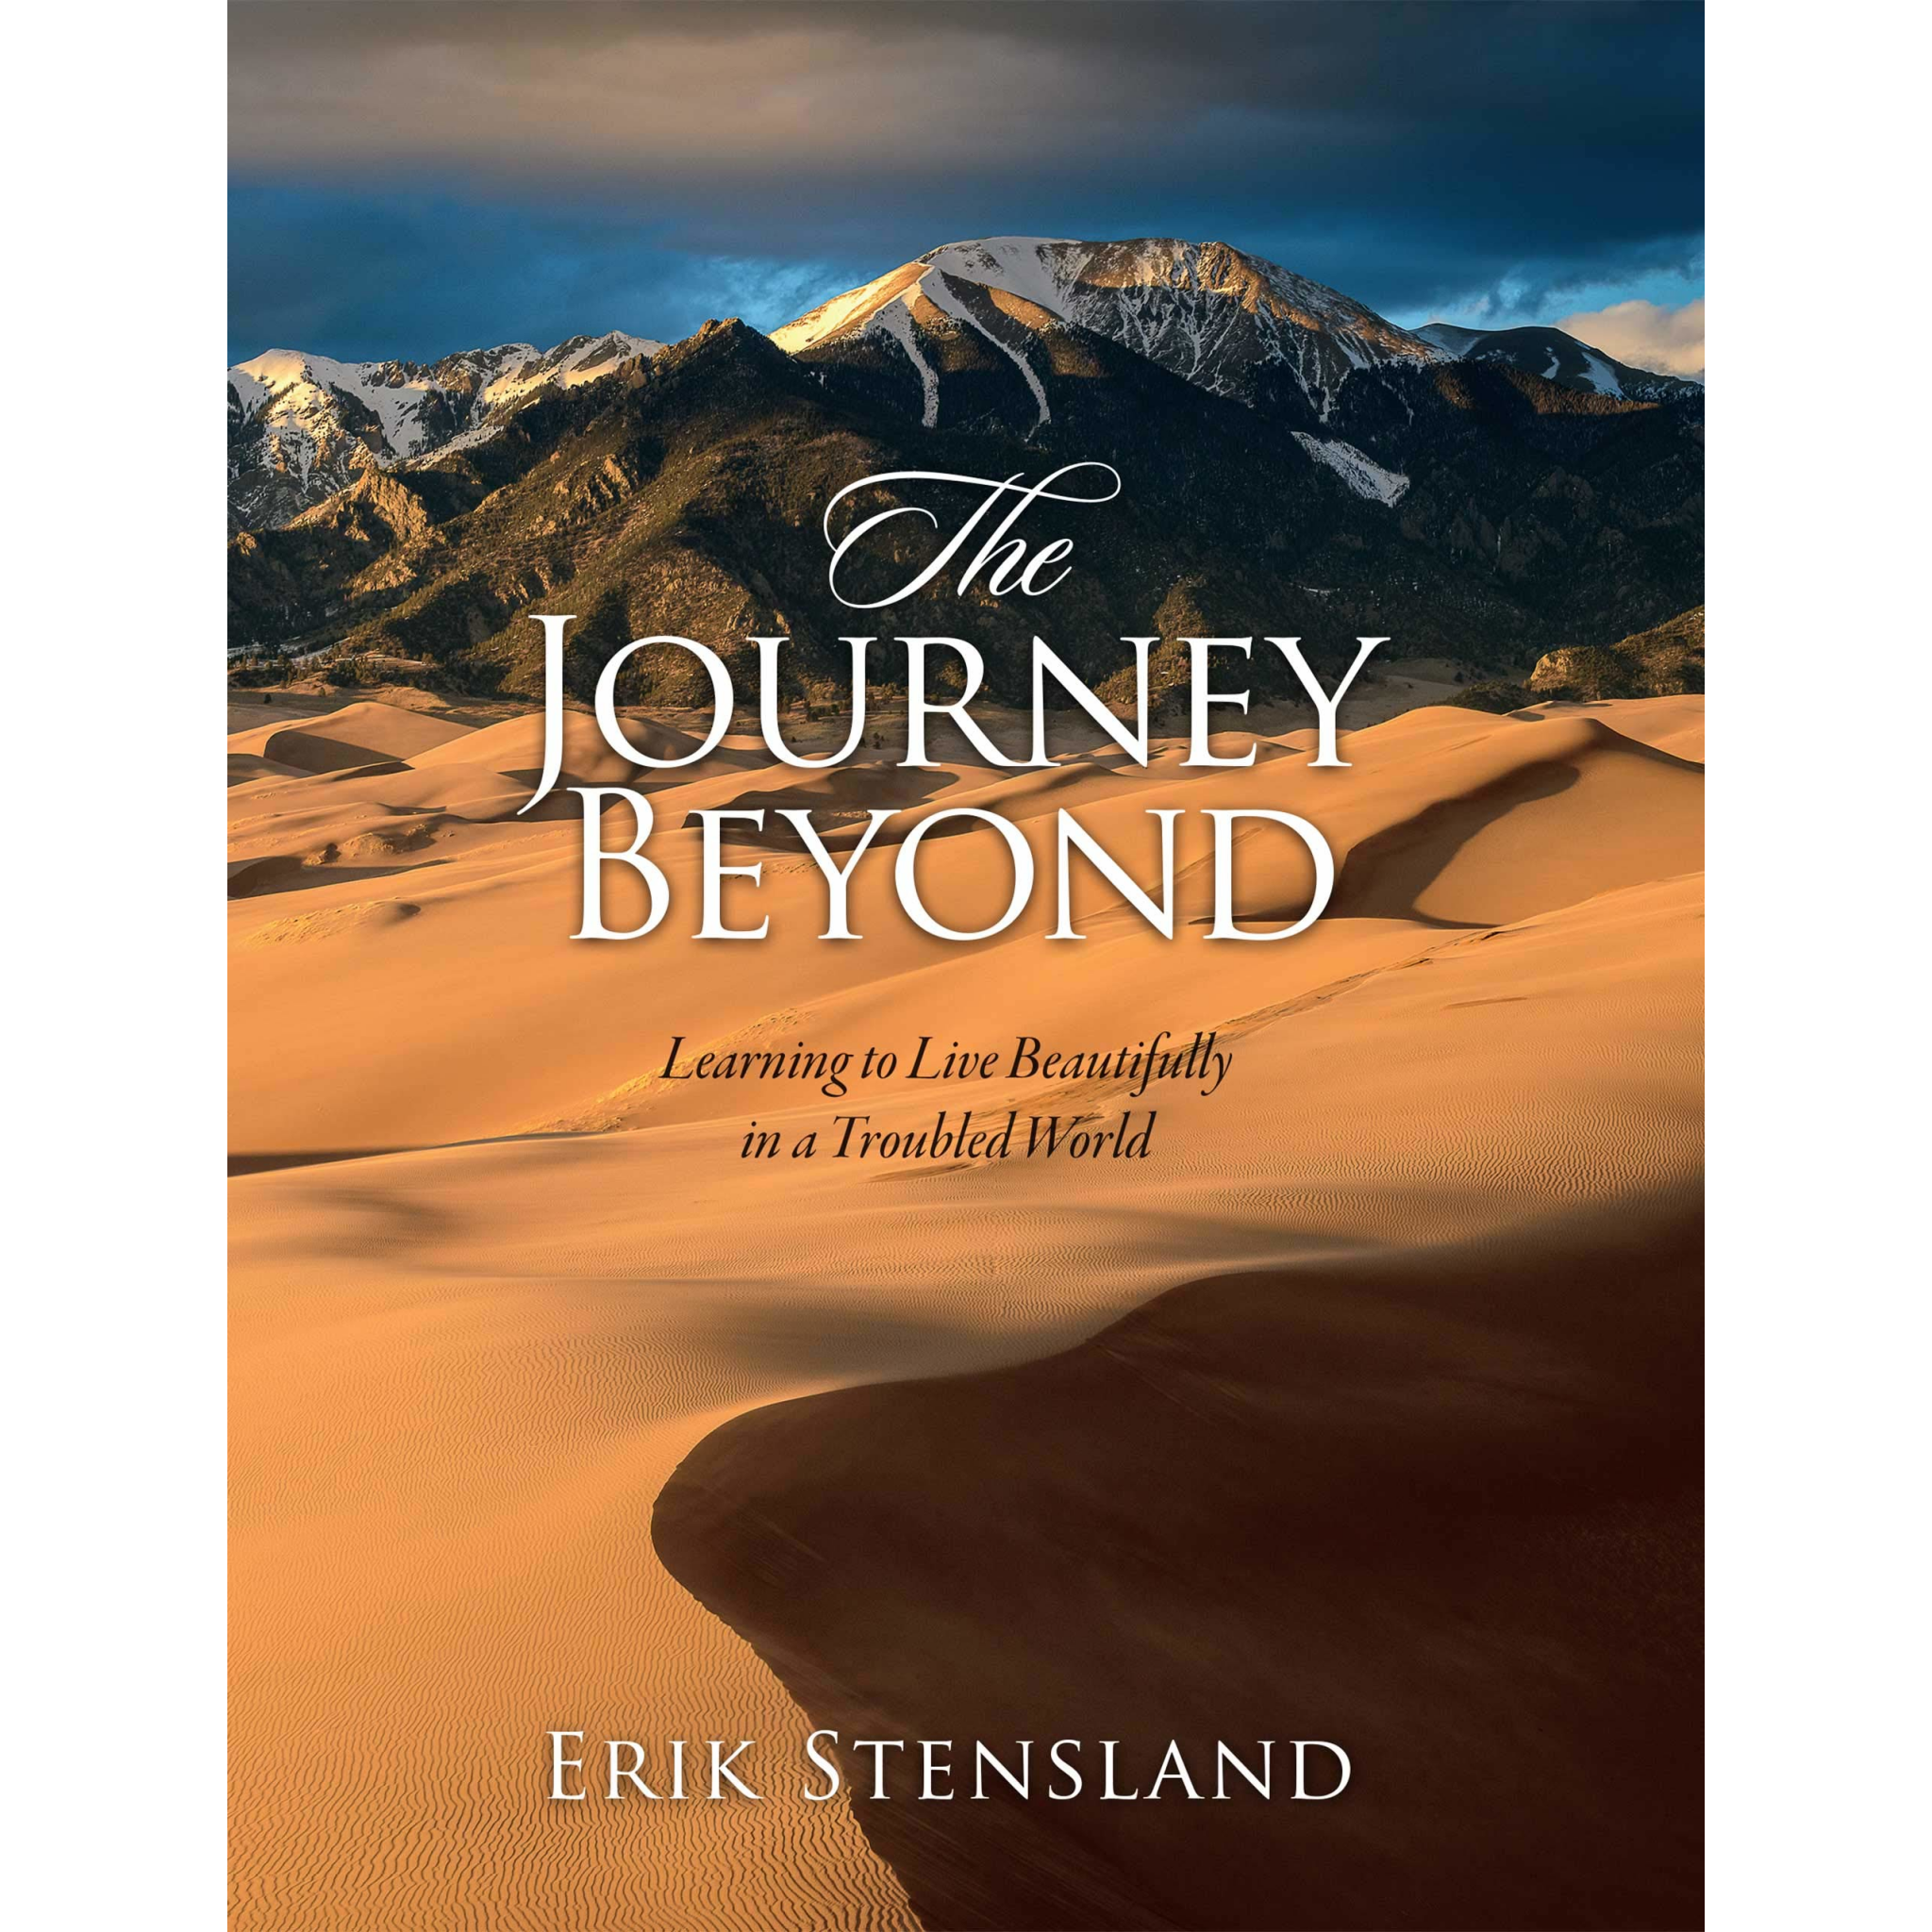 The Journey Beyond